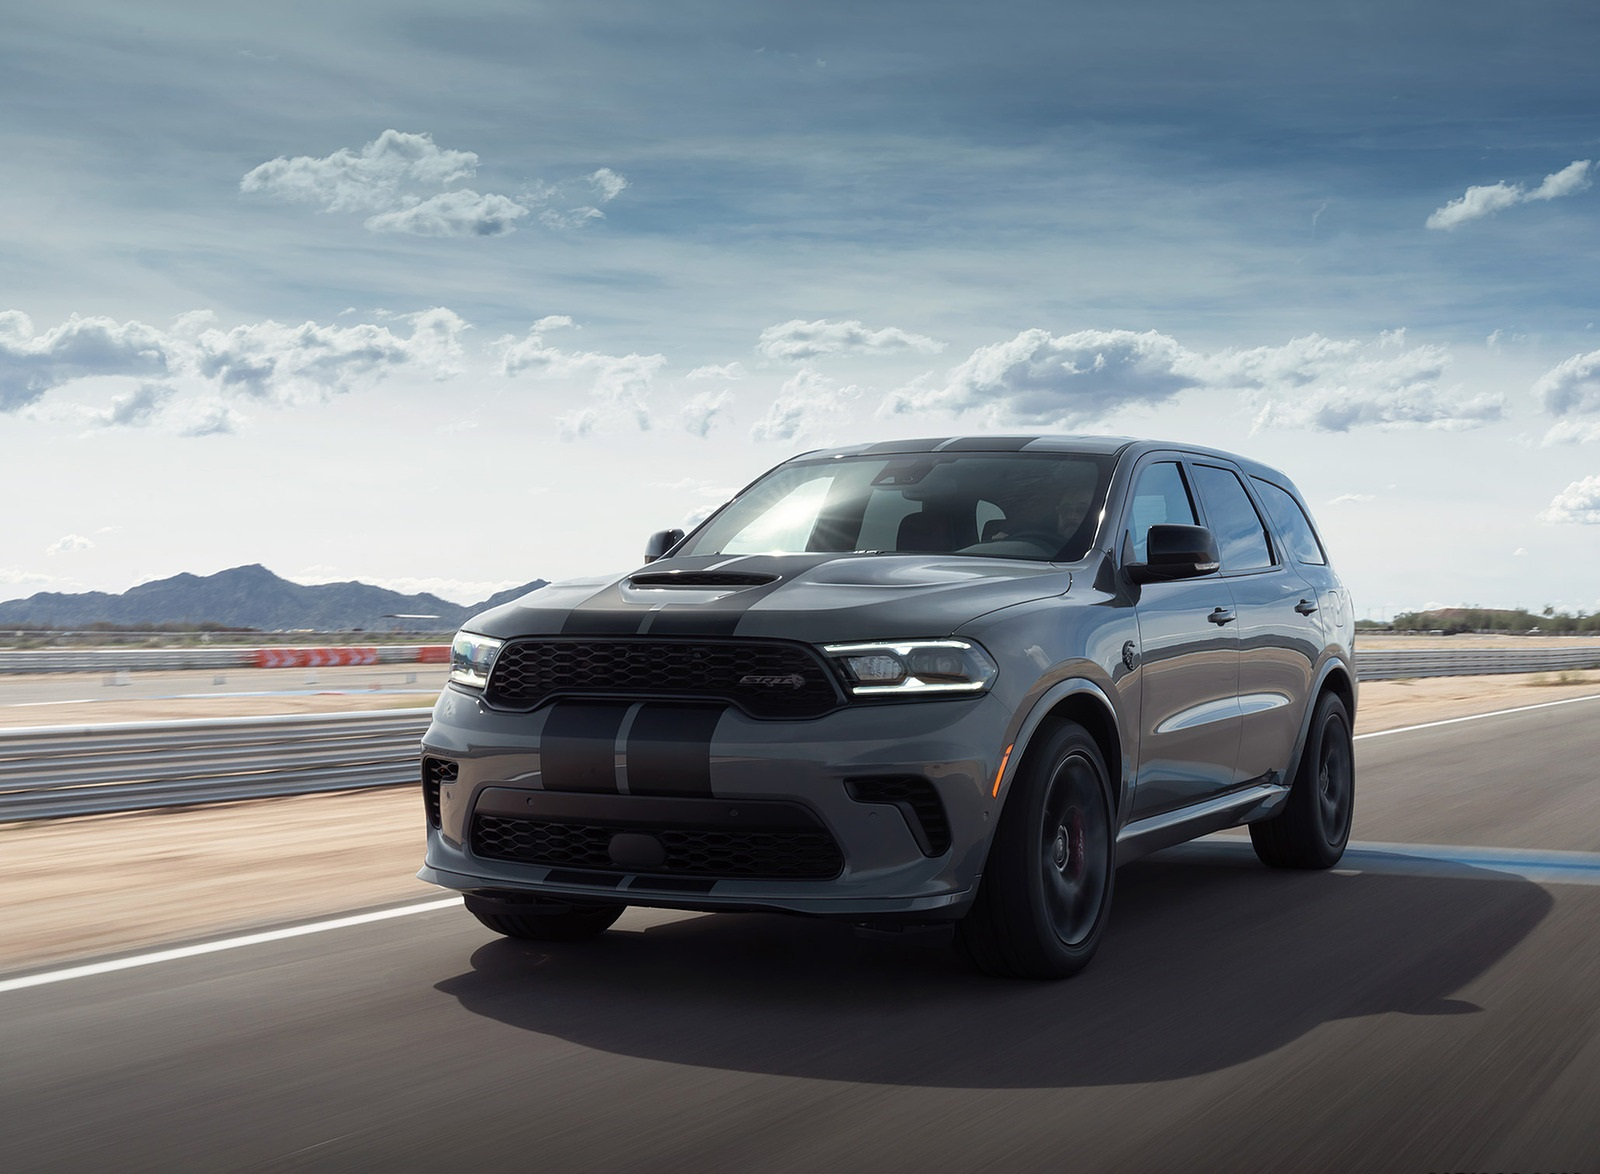 2021 Dodge Durango Srt Hellcat Wallpapers 63 Hd Images Newcarcars